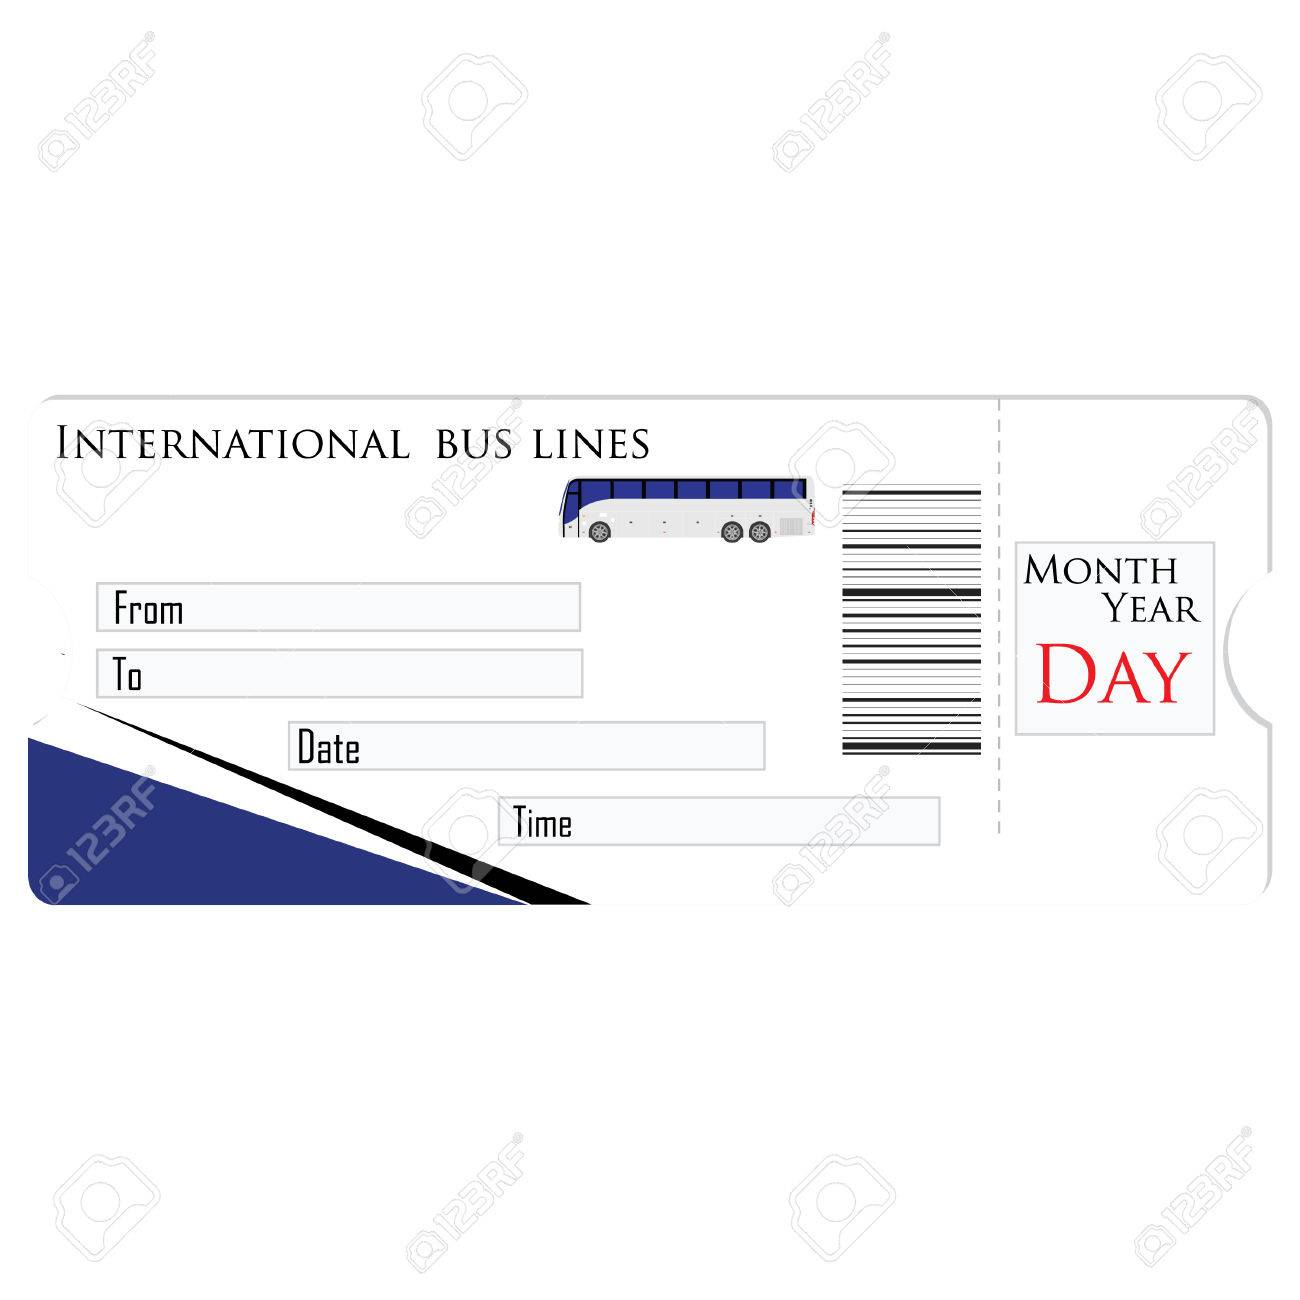 bus ticket raster isolated travel ticket blank ticket stock photo